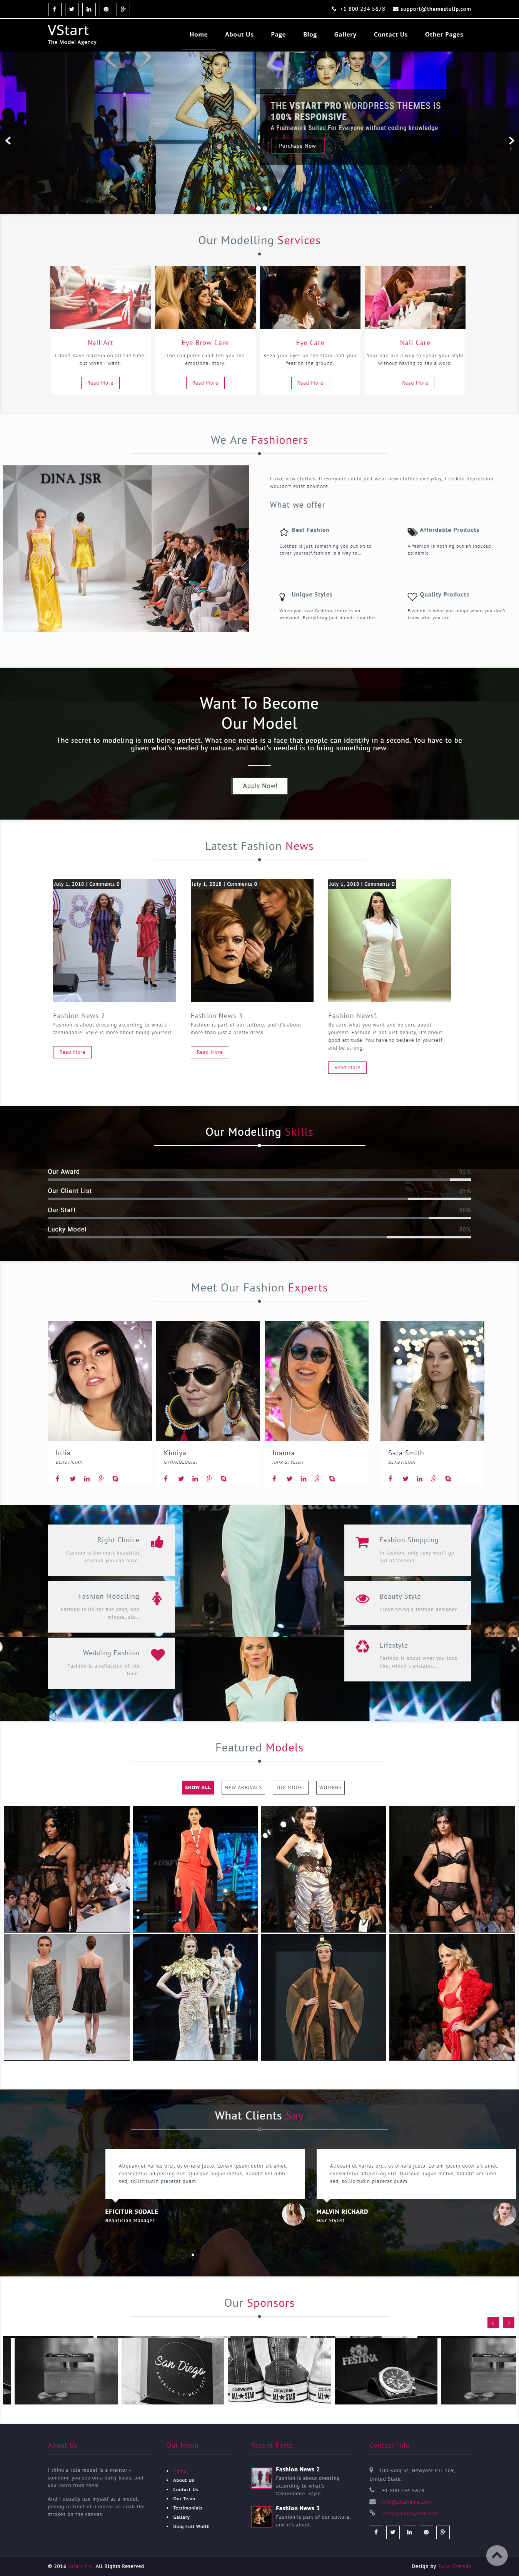 VStart - Best Free Lifestyle WordPress Theme